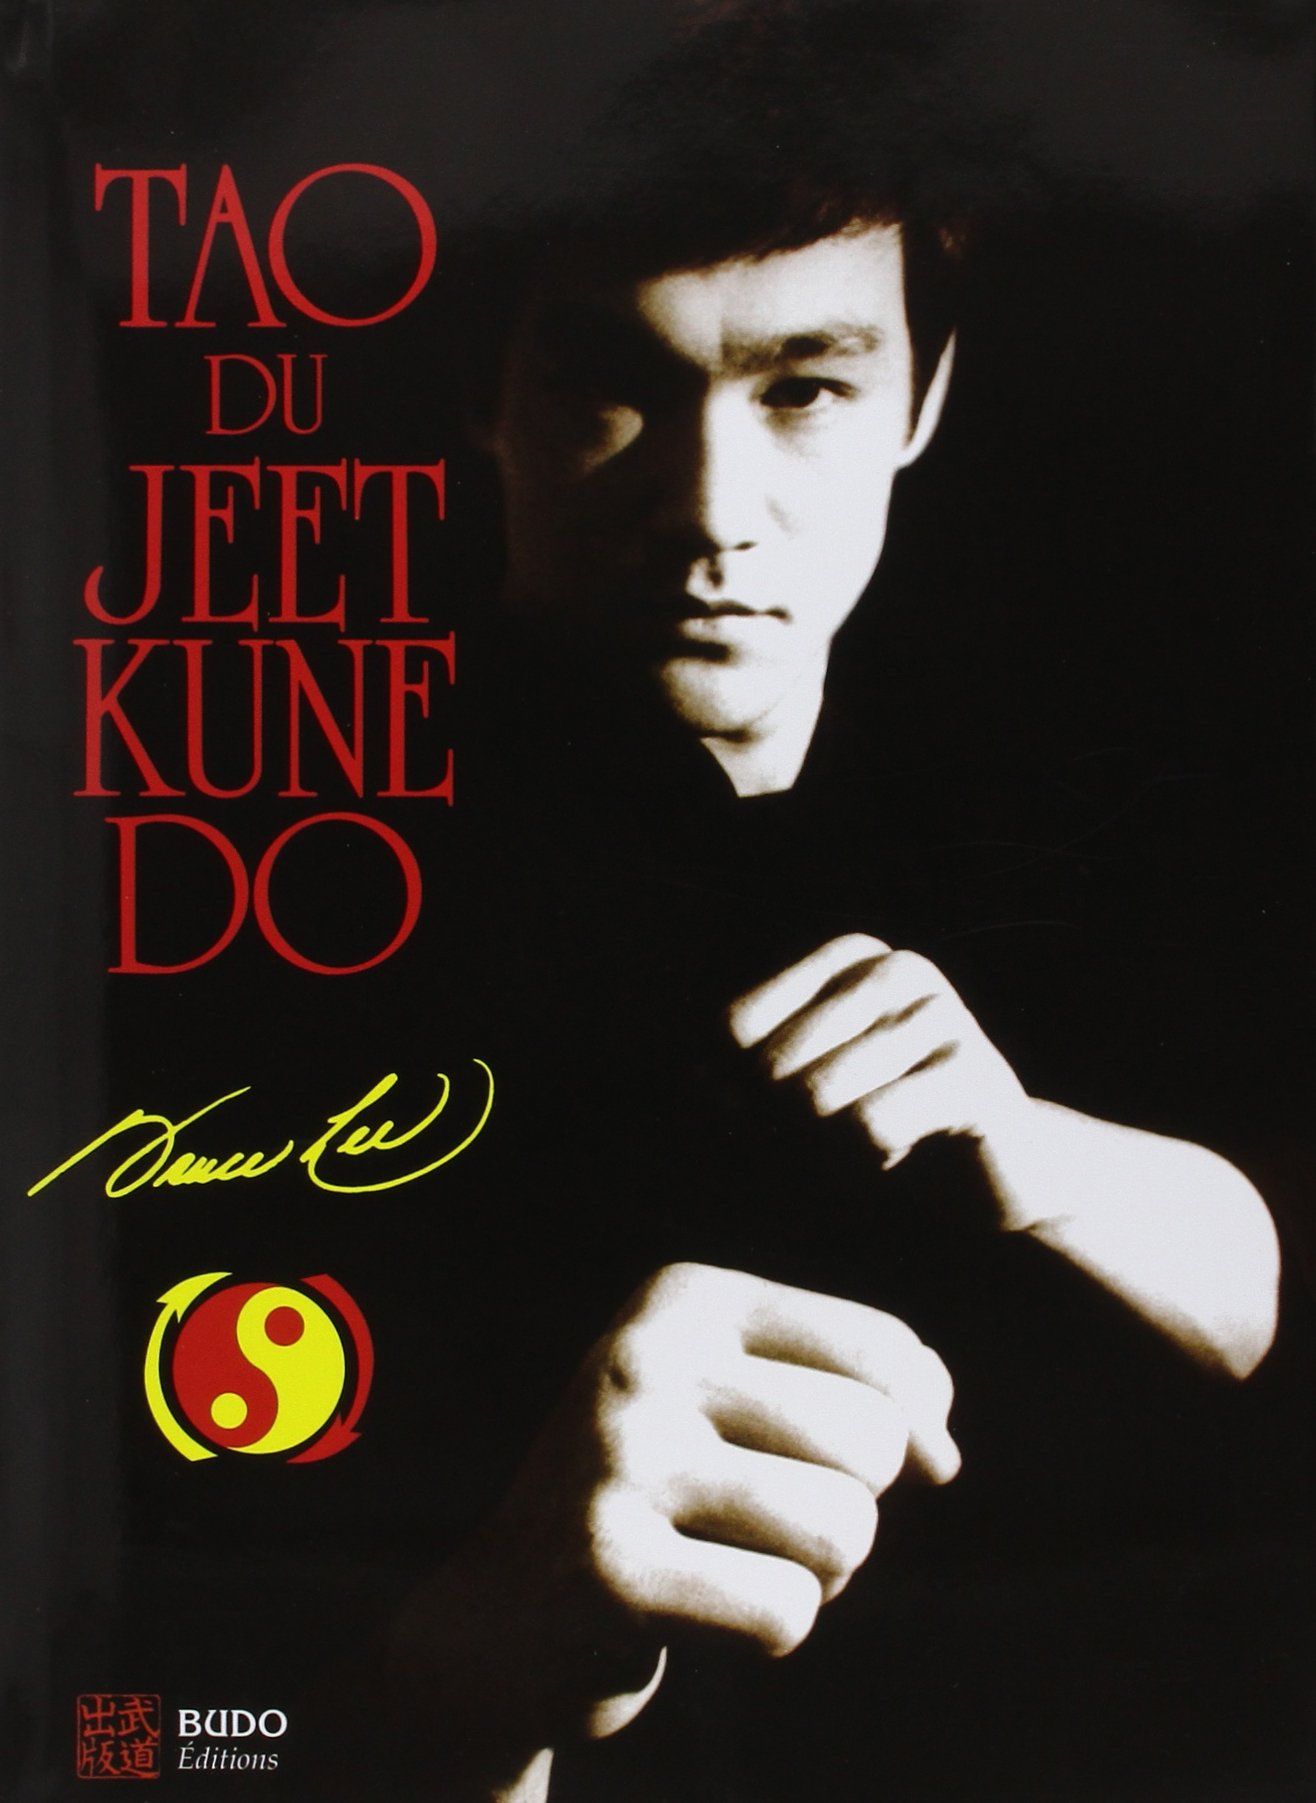 Tao du Jeet Kune Do by Budo Editions